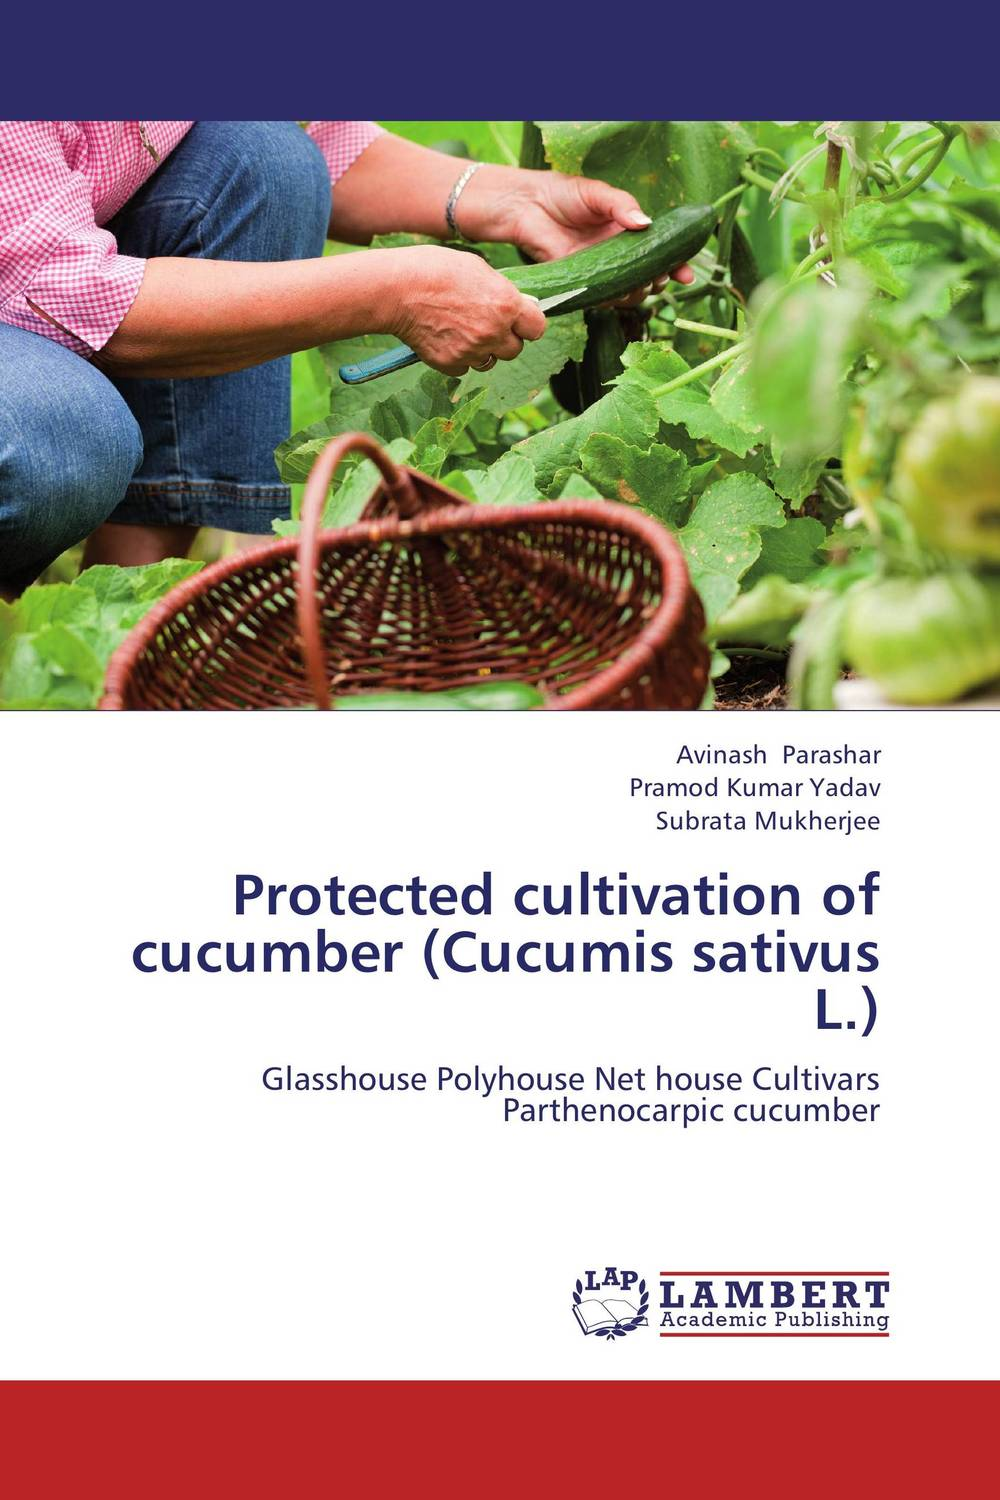 Protected cultivation of cucumber (Cucumis sativus L.) ornamental plant production in recycled water